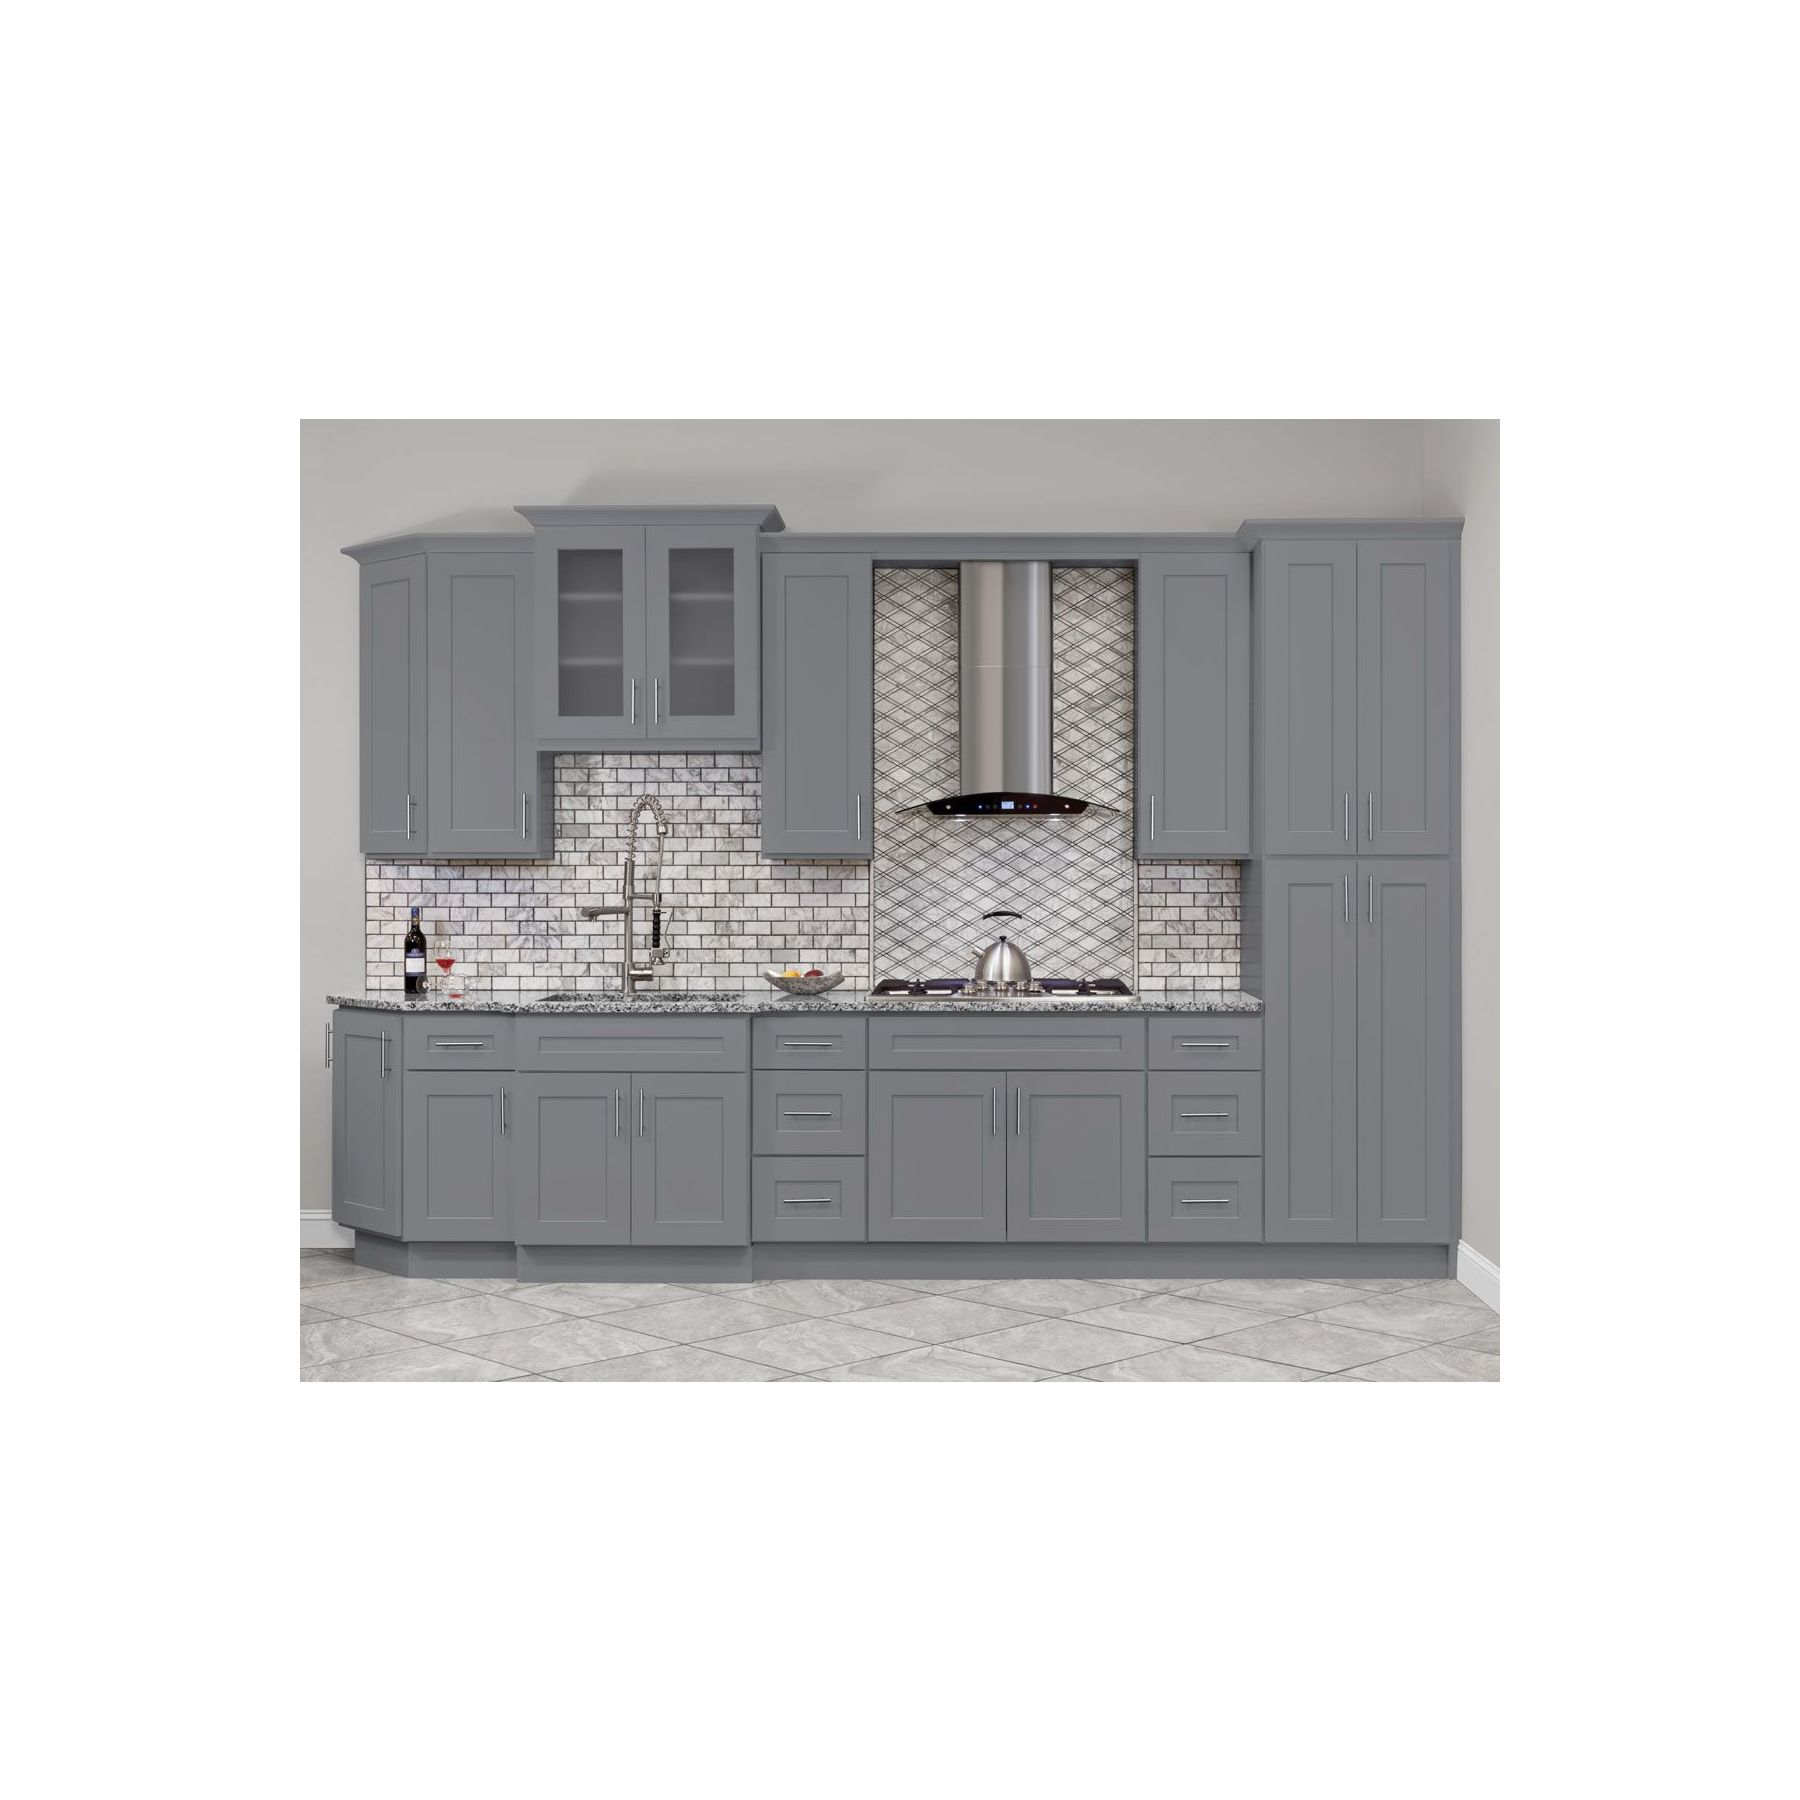 Lesscare Colonial Gray 10 X Kitchen Cabinets